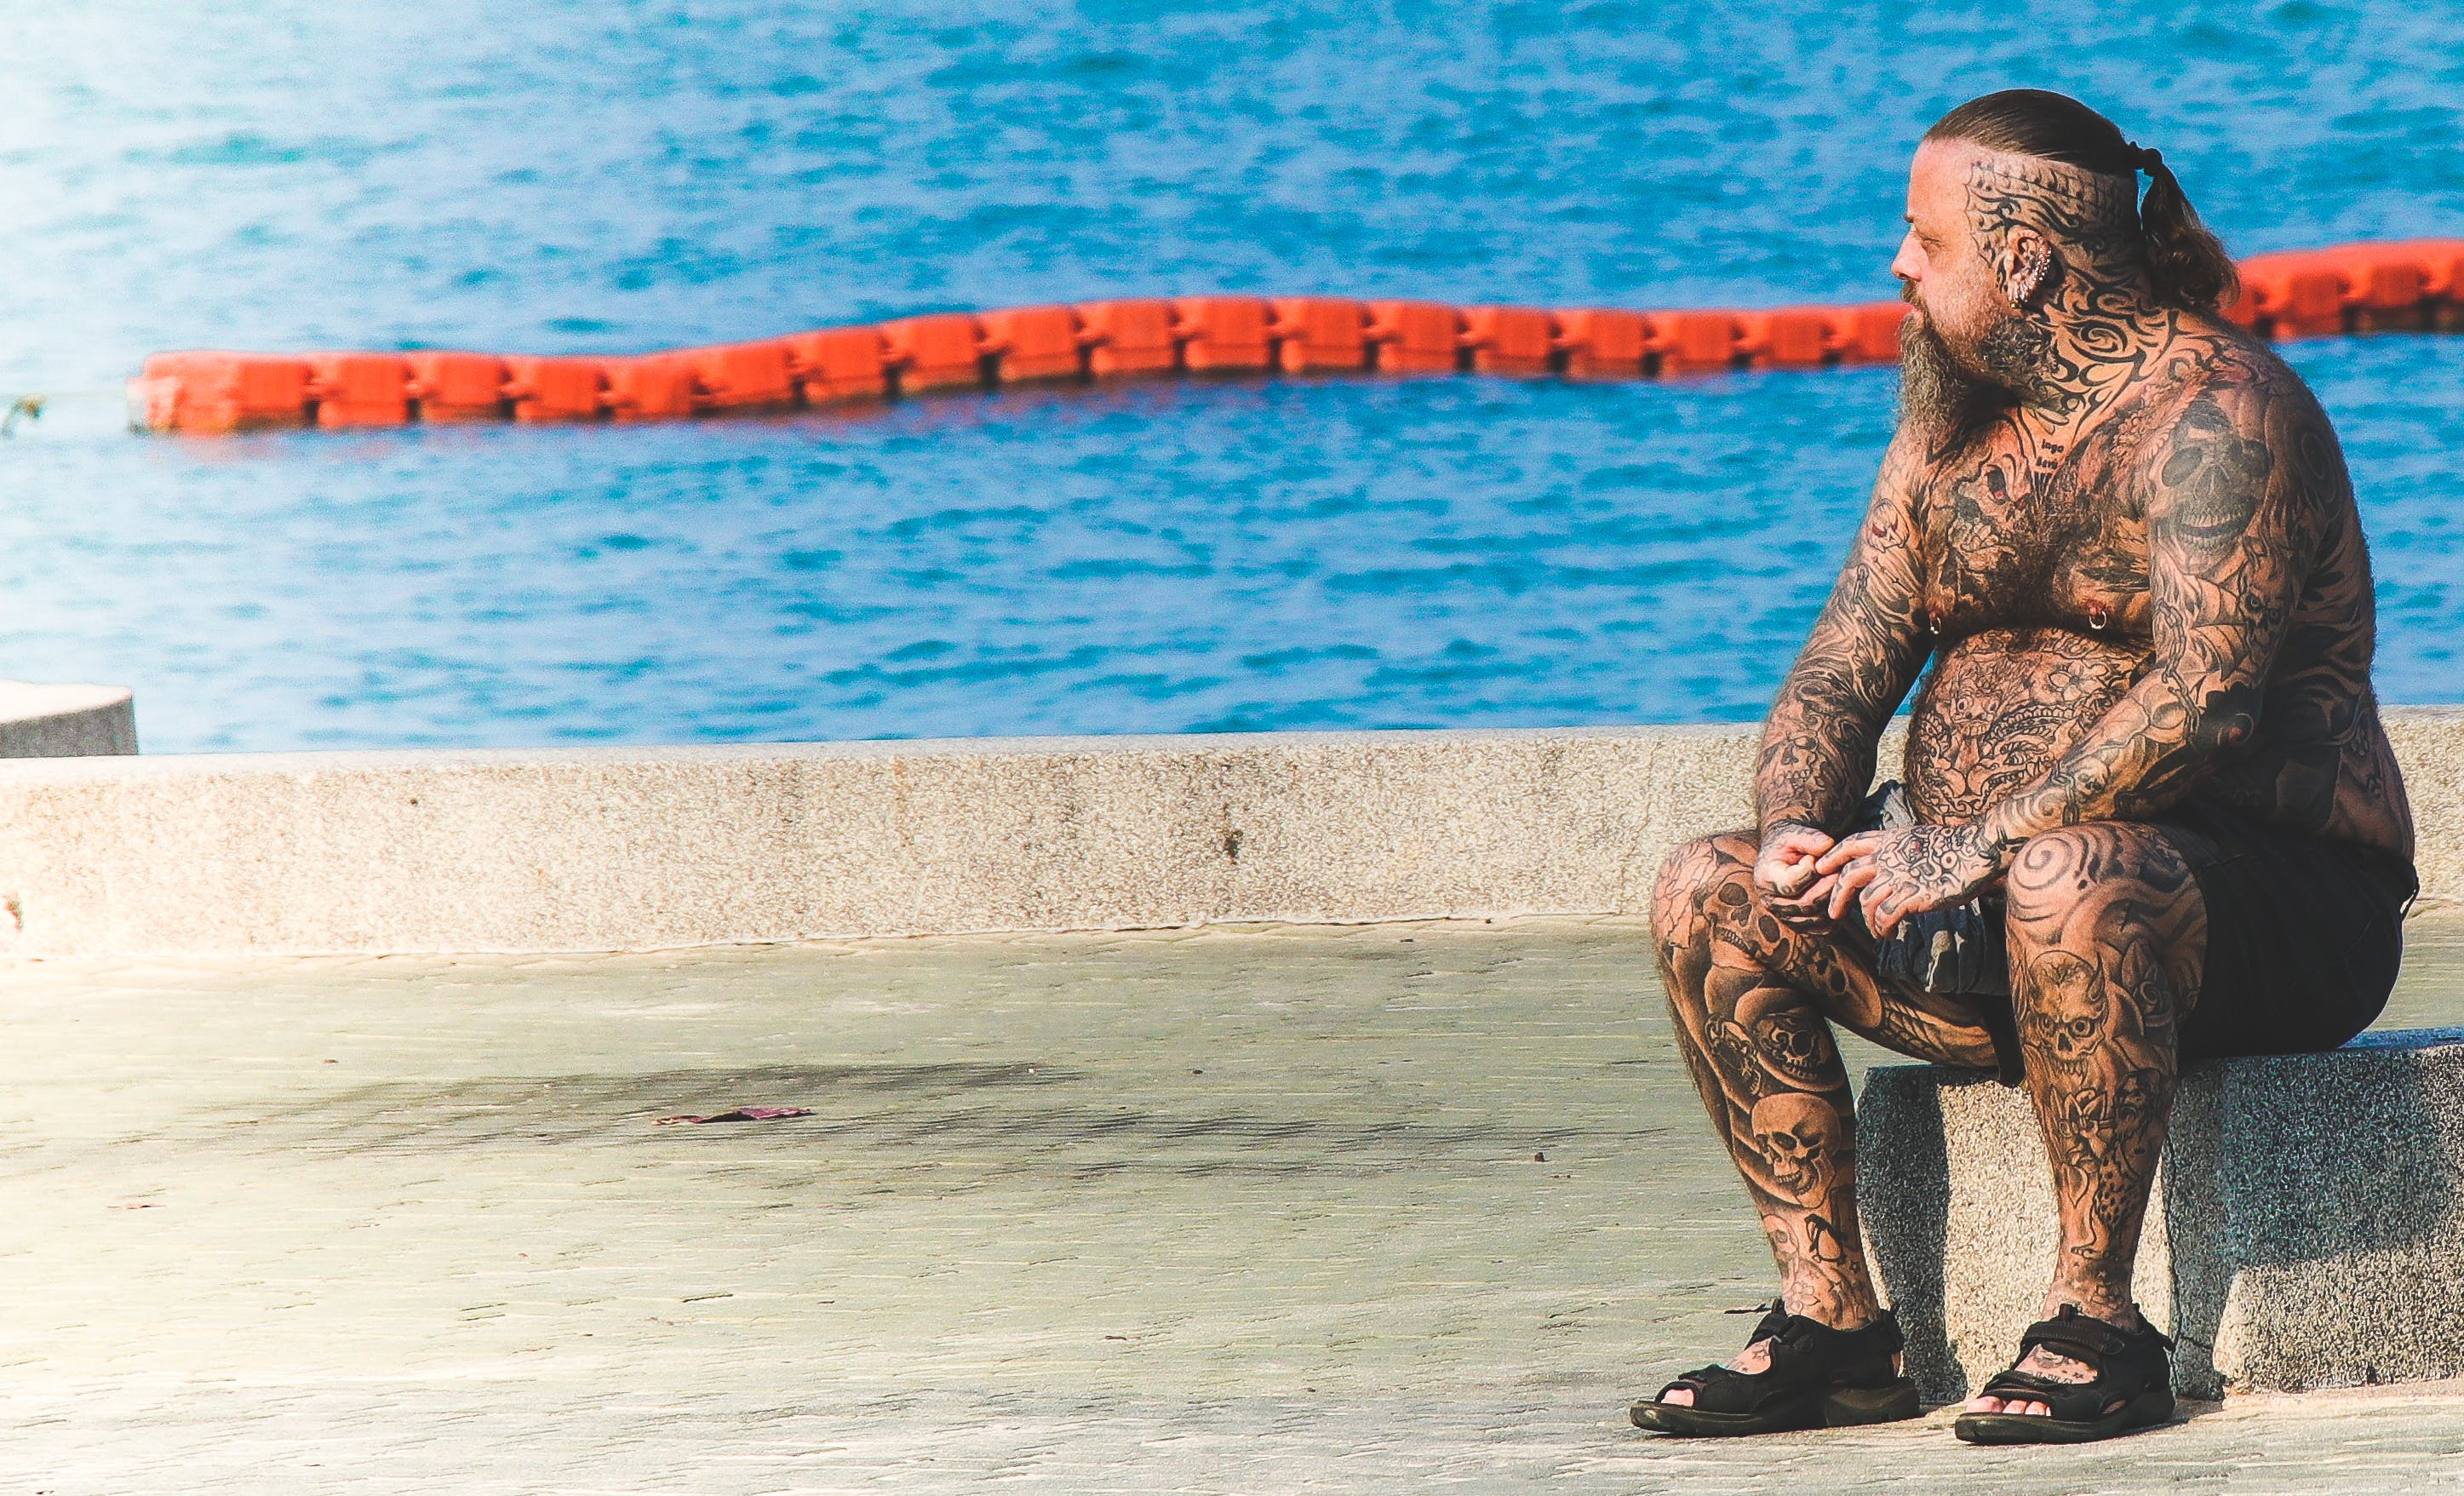 Man With Tattoos Sitting on Gray Concrete Floor Near Body of Water